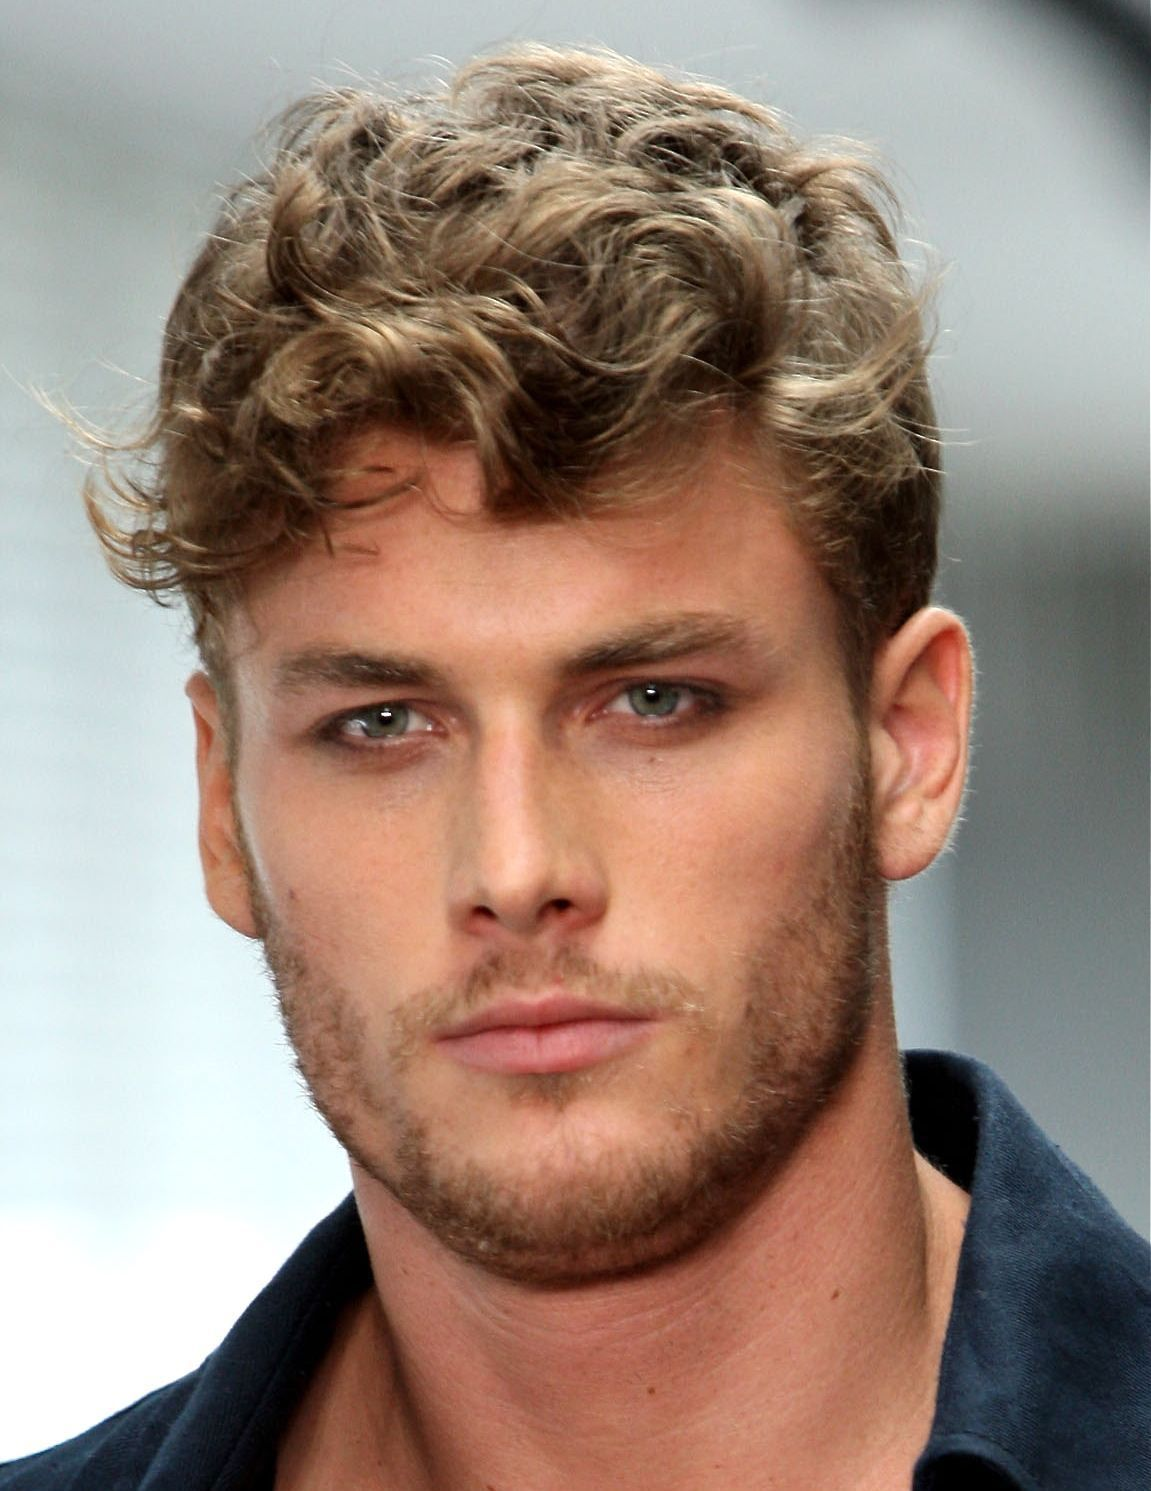 Pleasing 1000 Images About Haircuts For Men On Pinterest Men Curly Short Hairstyles Gunalazisus